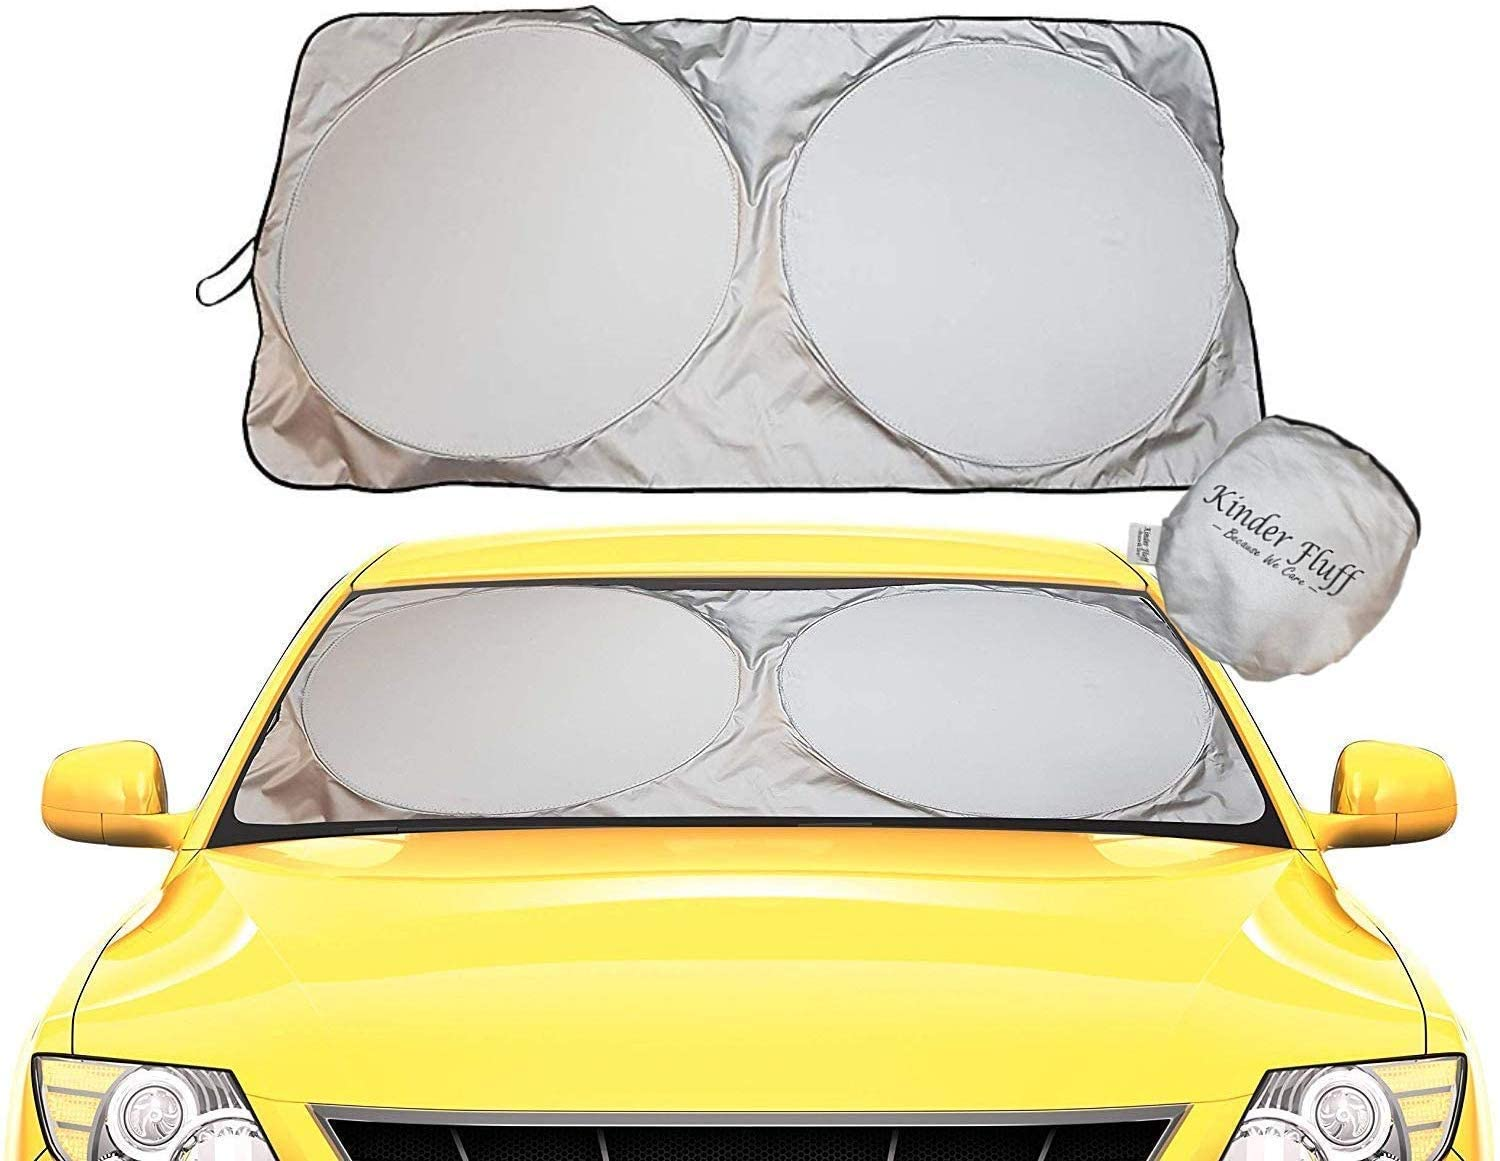 kinder Fluff Car Windshield Sun Shade with Storage Pouch | The only Certified Foldable Sunshade for car Windshield to Block 99.87% UV Rays | Keeping Car Interior Cooler | Sun Heat Protection (Large)